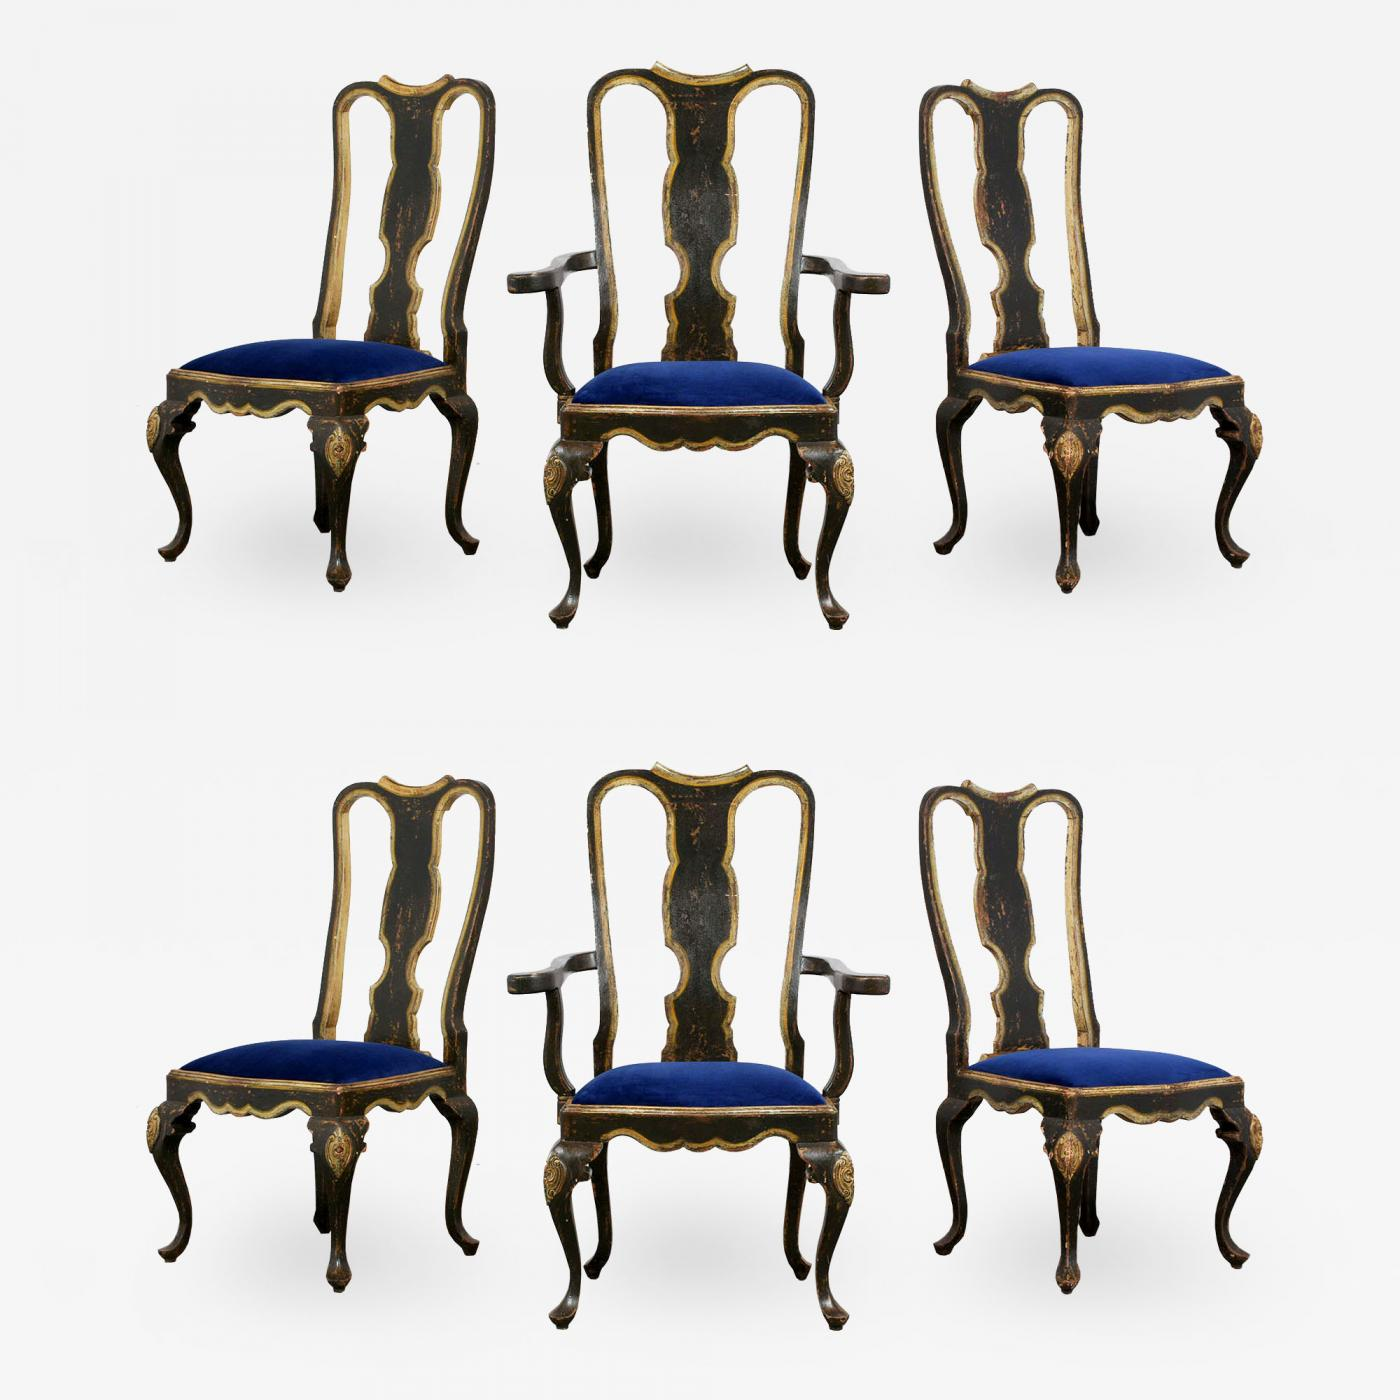 queen anne style chair havana flair single person hammock swing hand painted portuguese s set of six dining chairs listings furniture seating upholstered portugueses